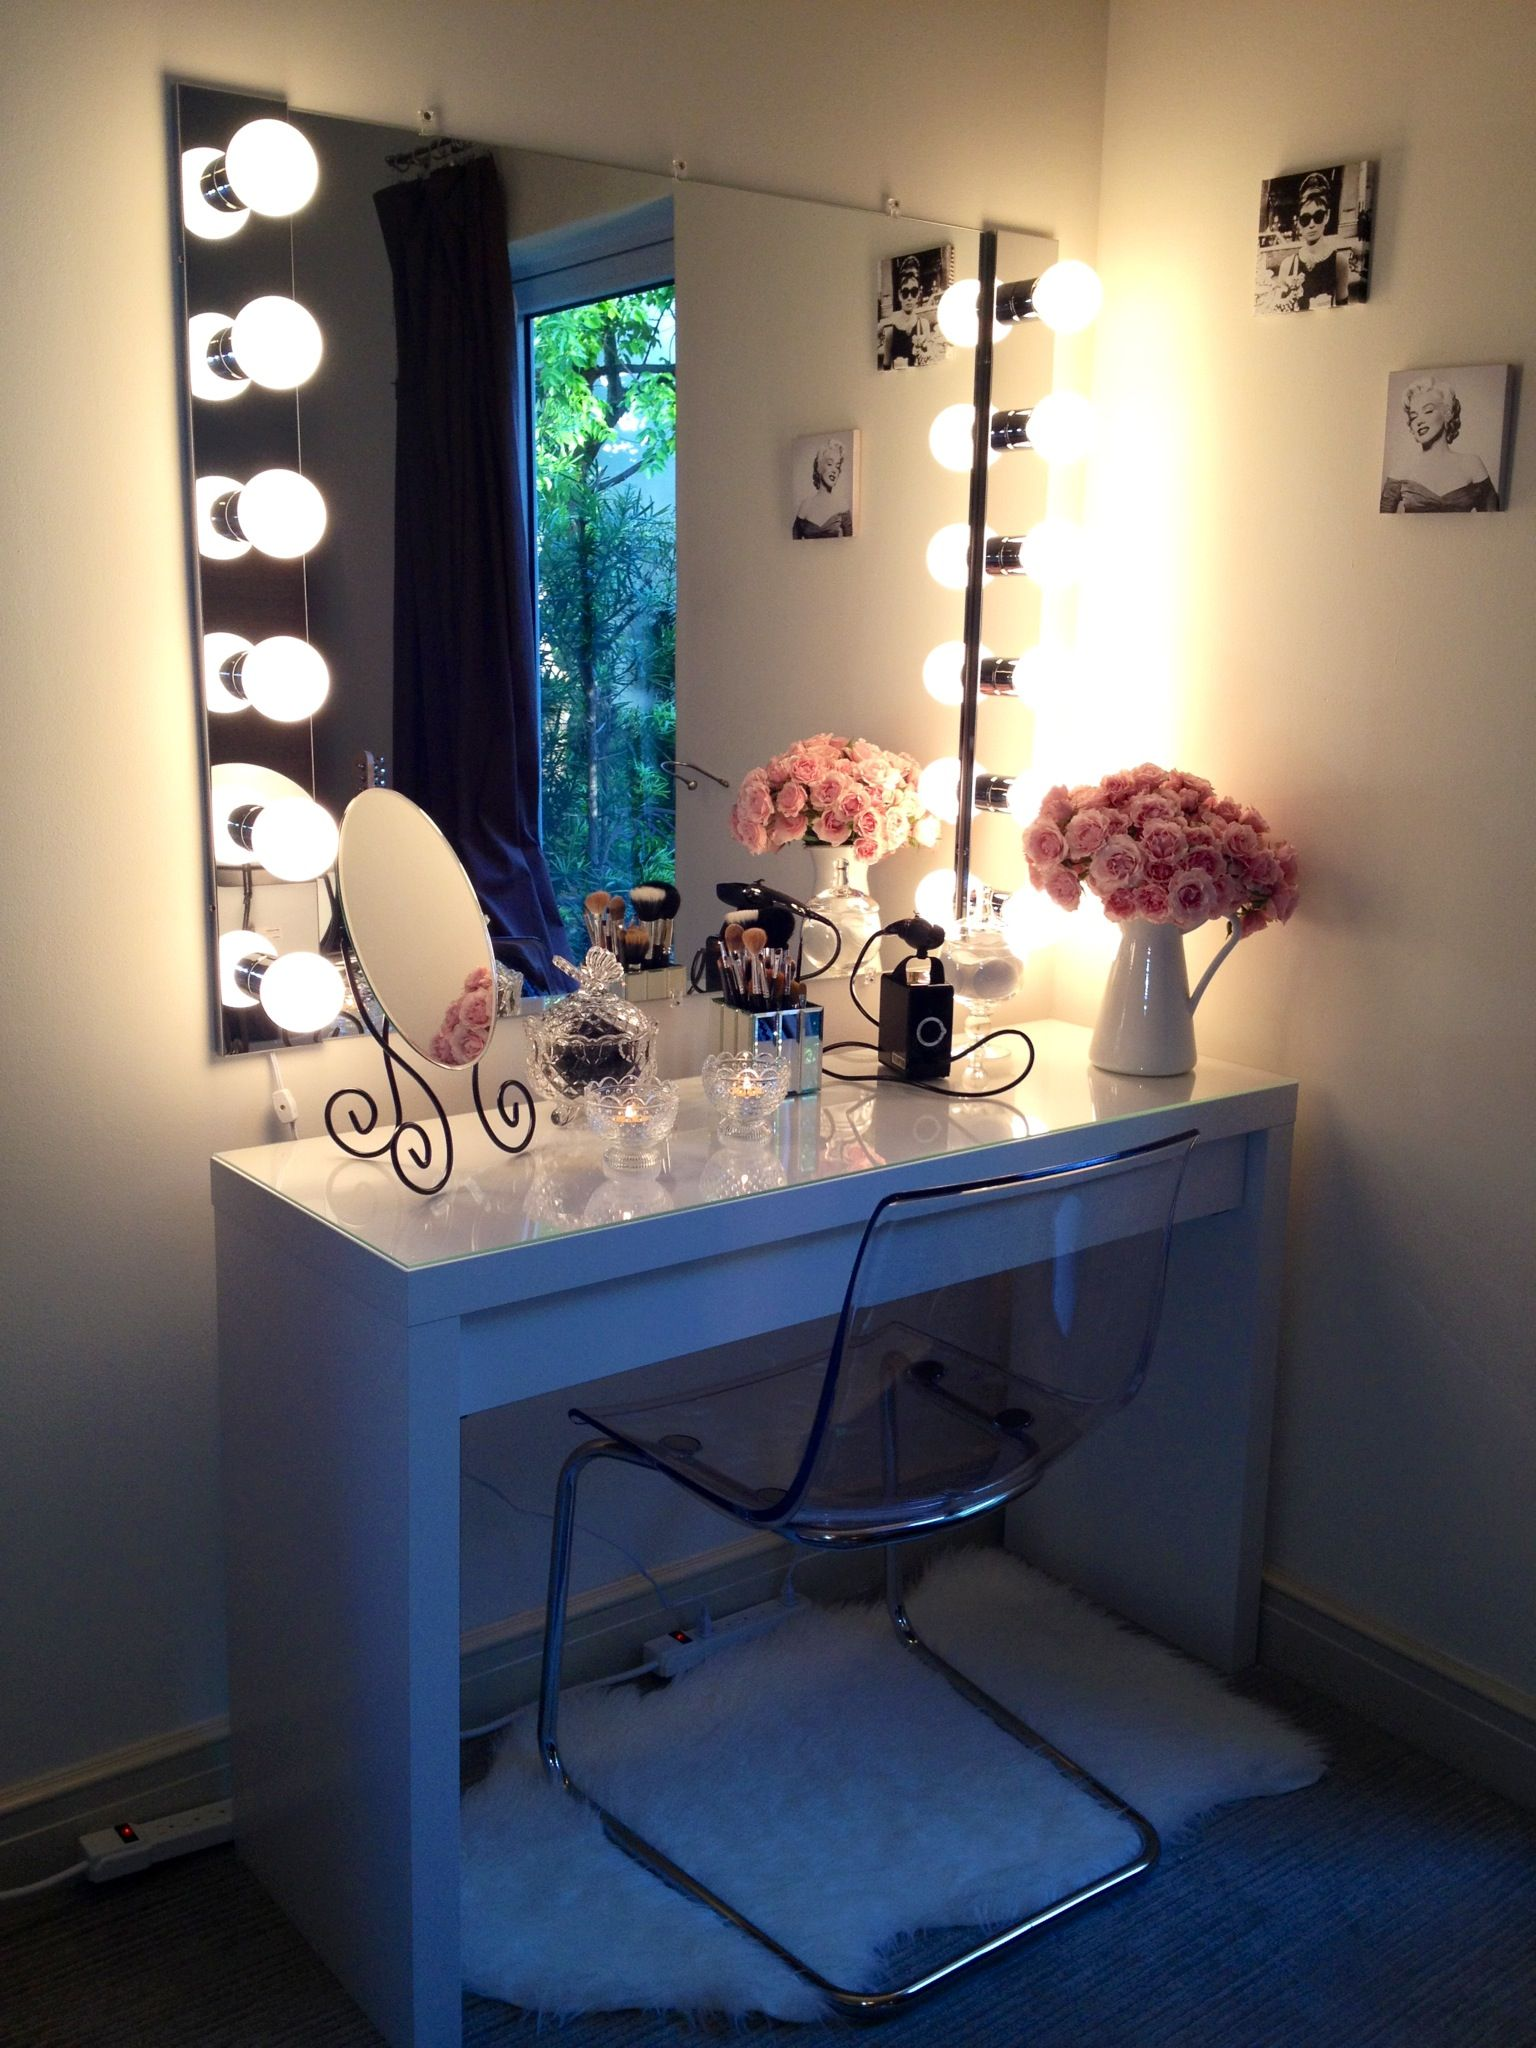 IKEA Malm Dressing Table   Makeup Vanity And That Mirror With Lighting  (maybe Smaller)